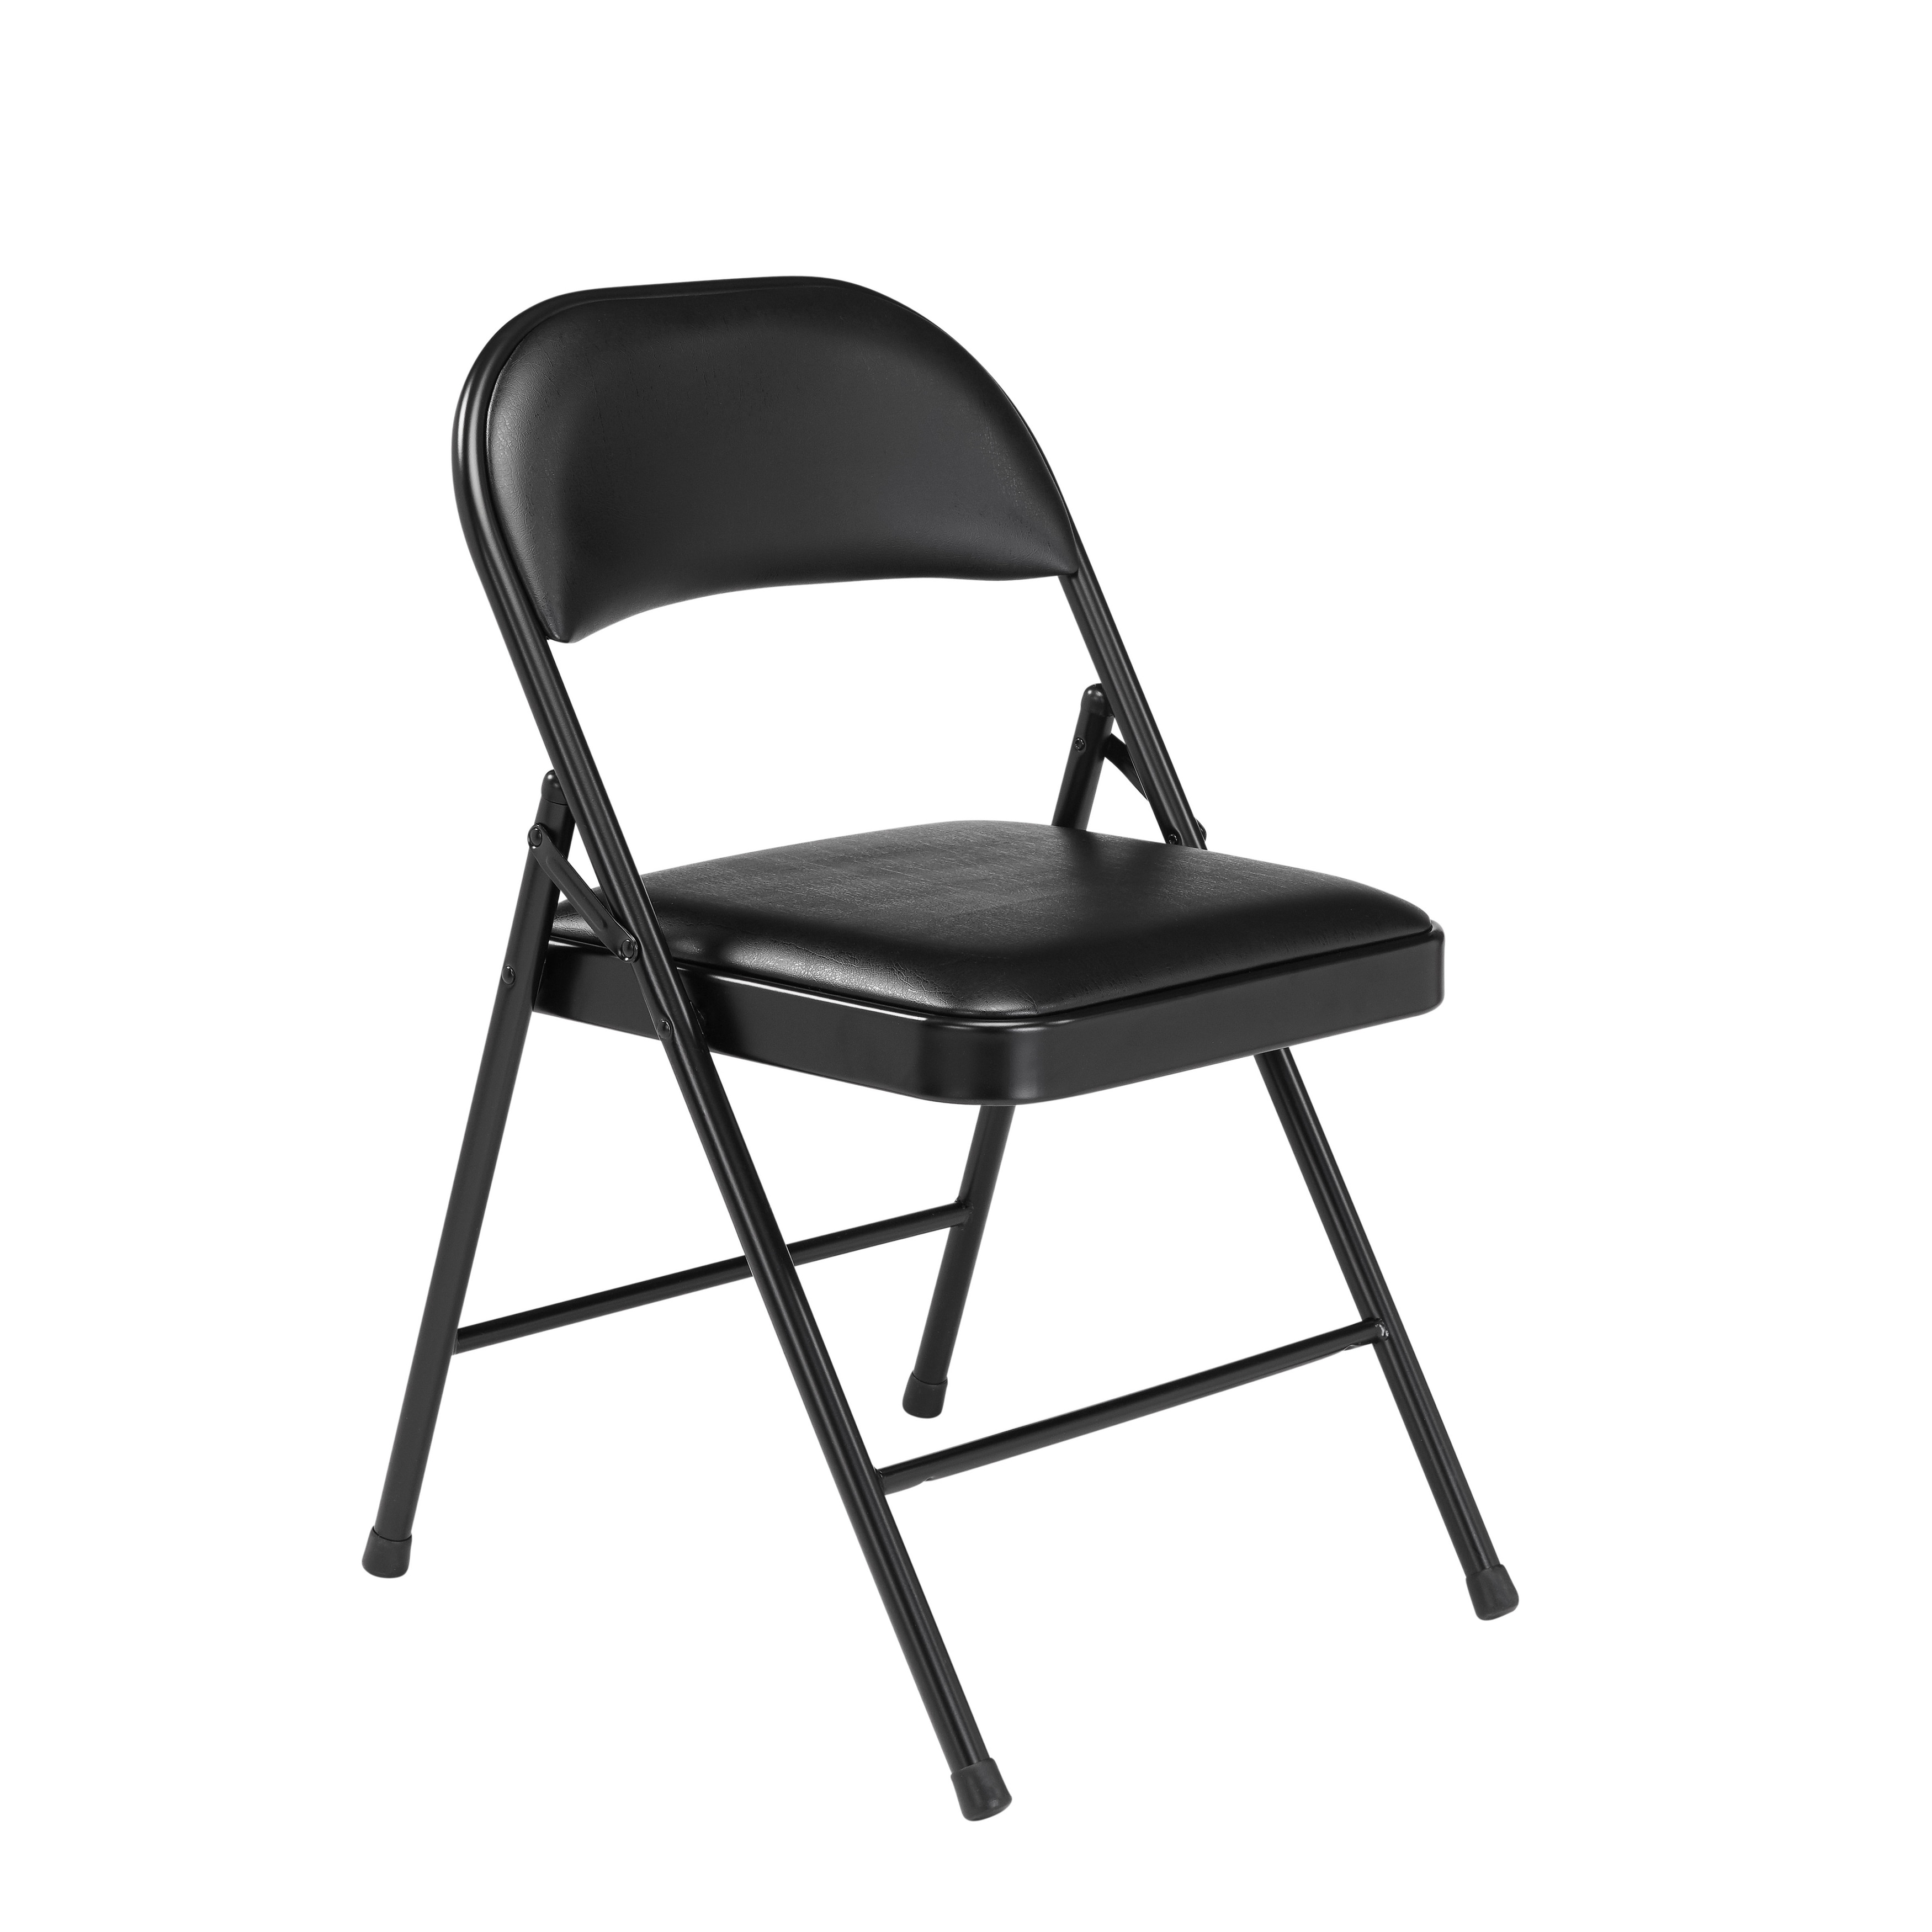 Collapsible Chair Buy Folding Chairs Online At Overstock Our Best Home Office